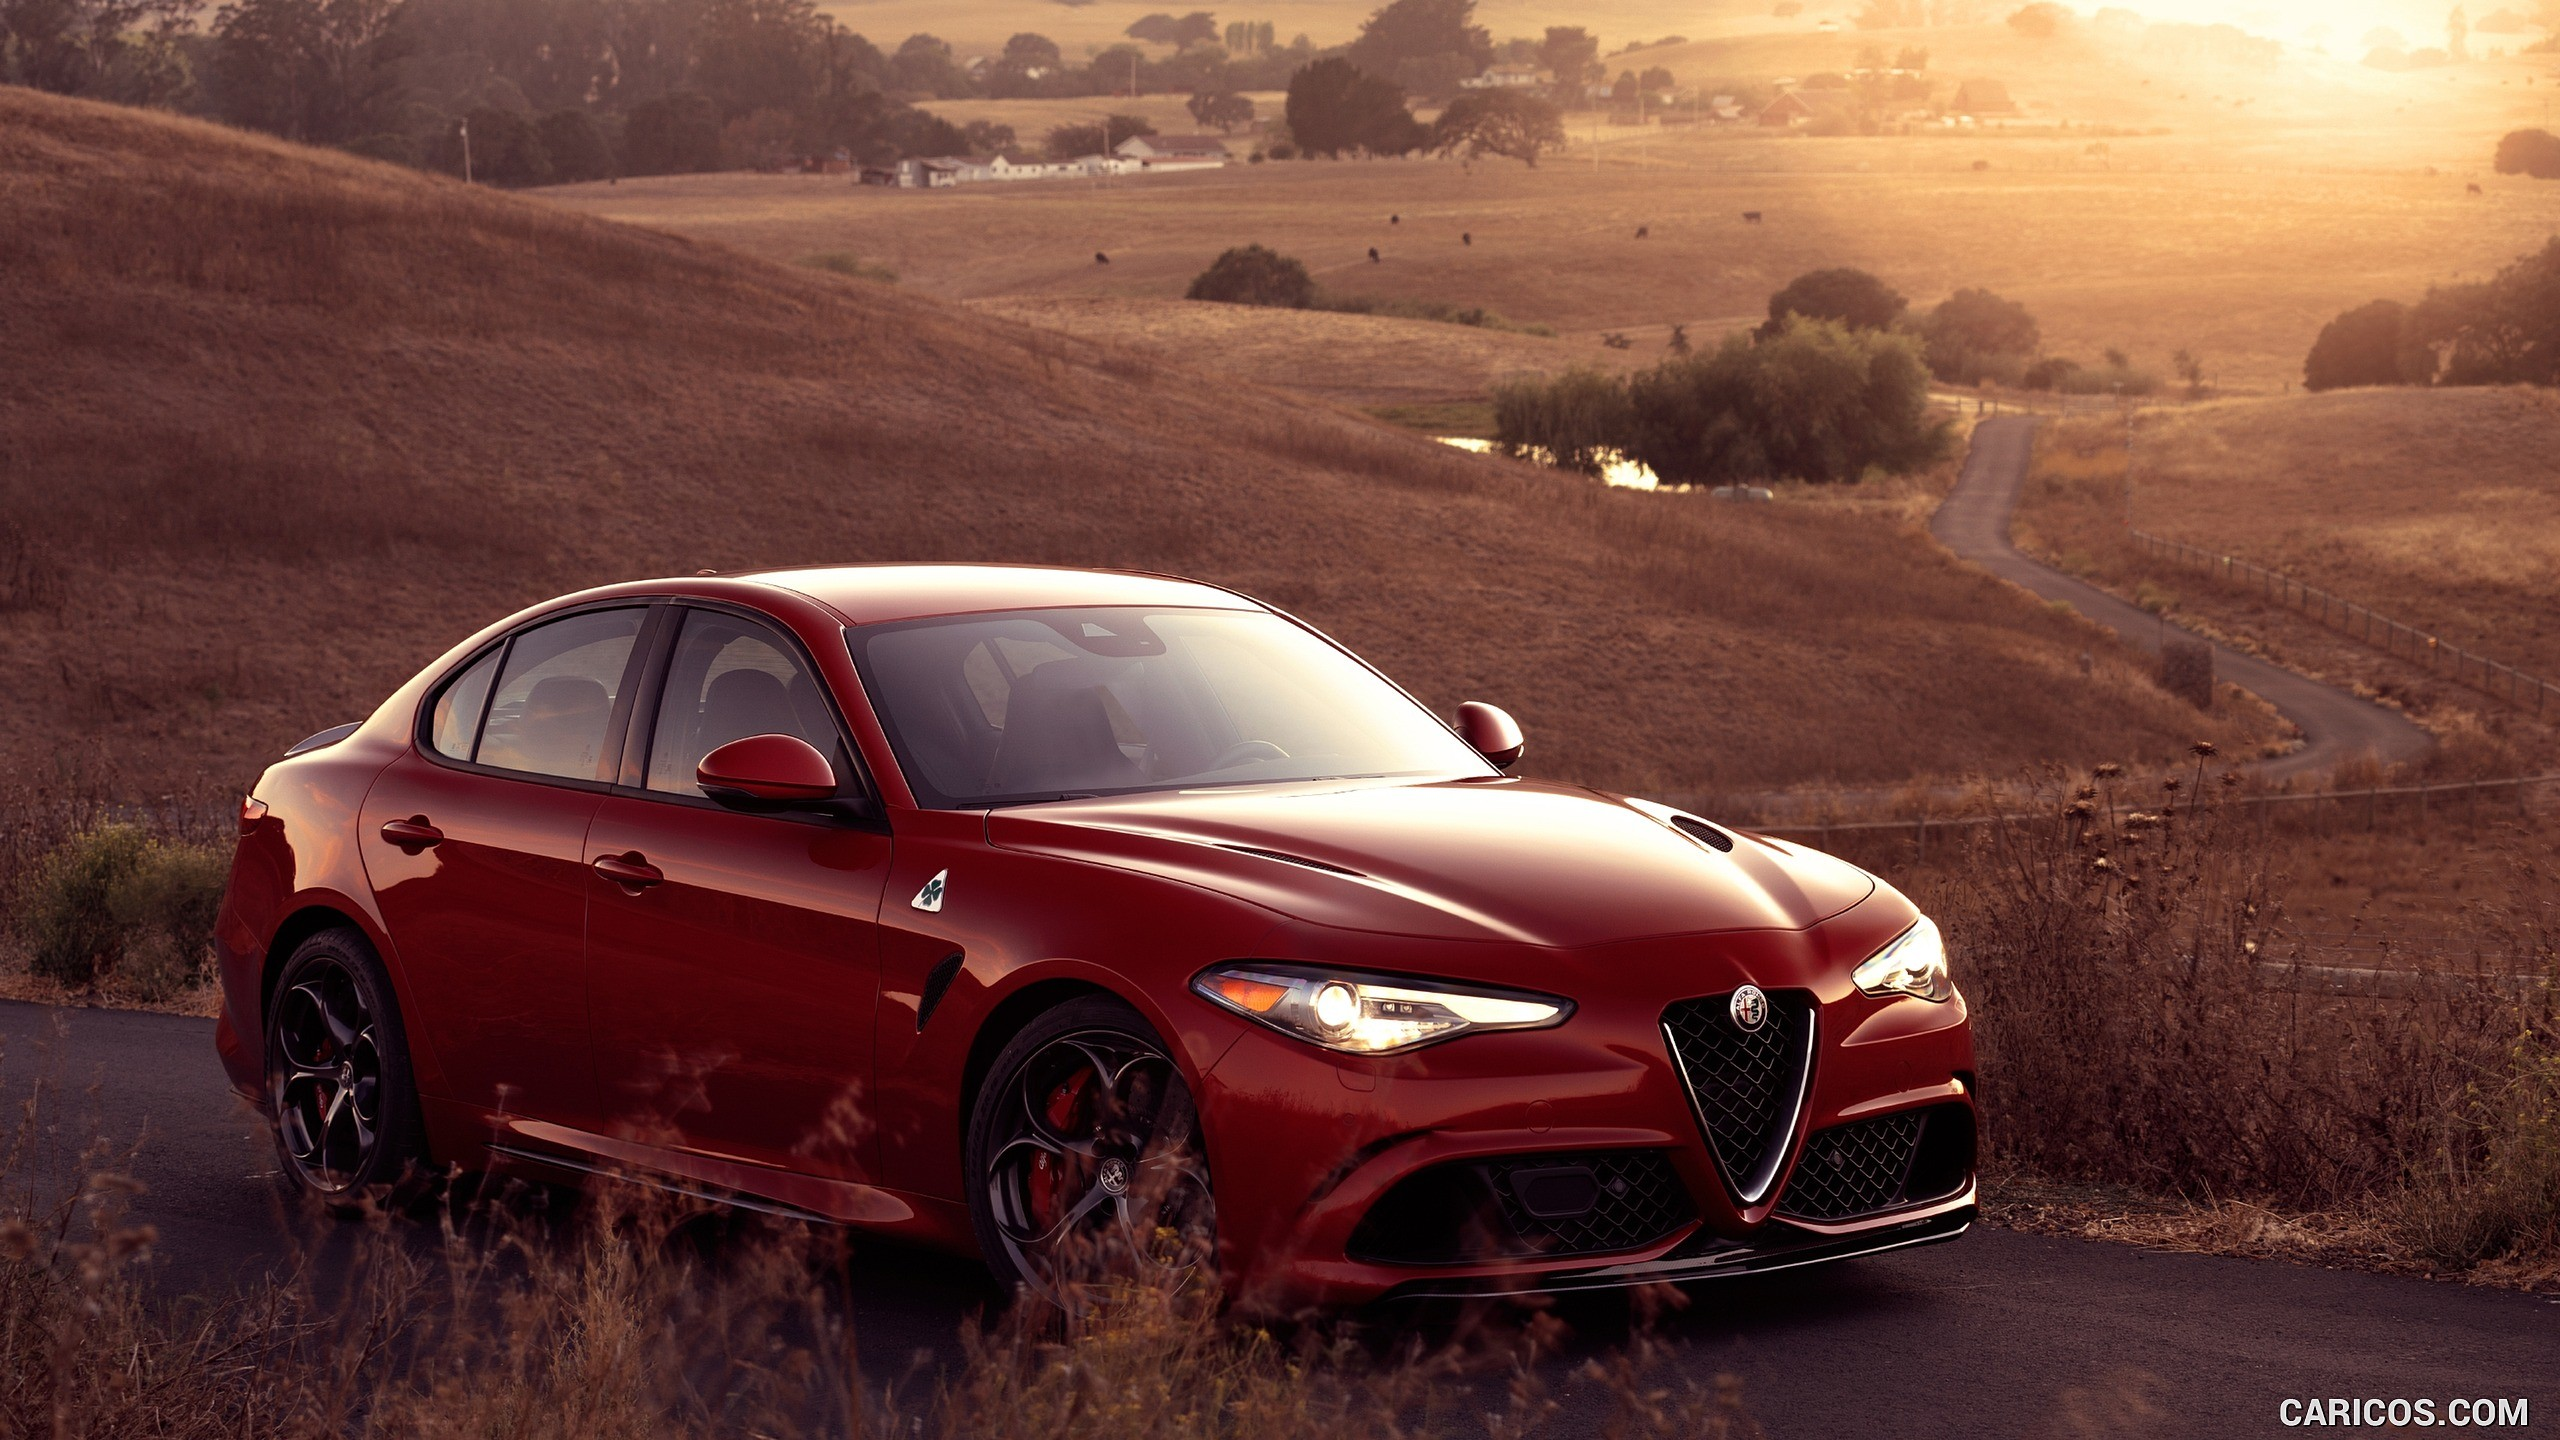 1366x768 Alfa Romeo Hd 1366x768 Resolution Hd 4k Wallpapers Images Backgrounds Photos And Pictures